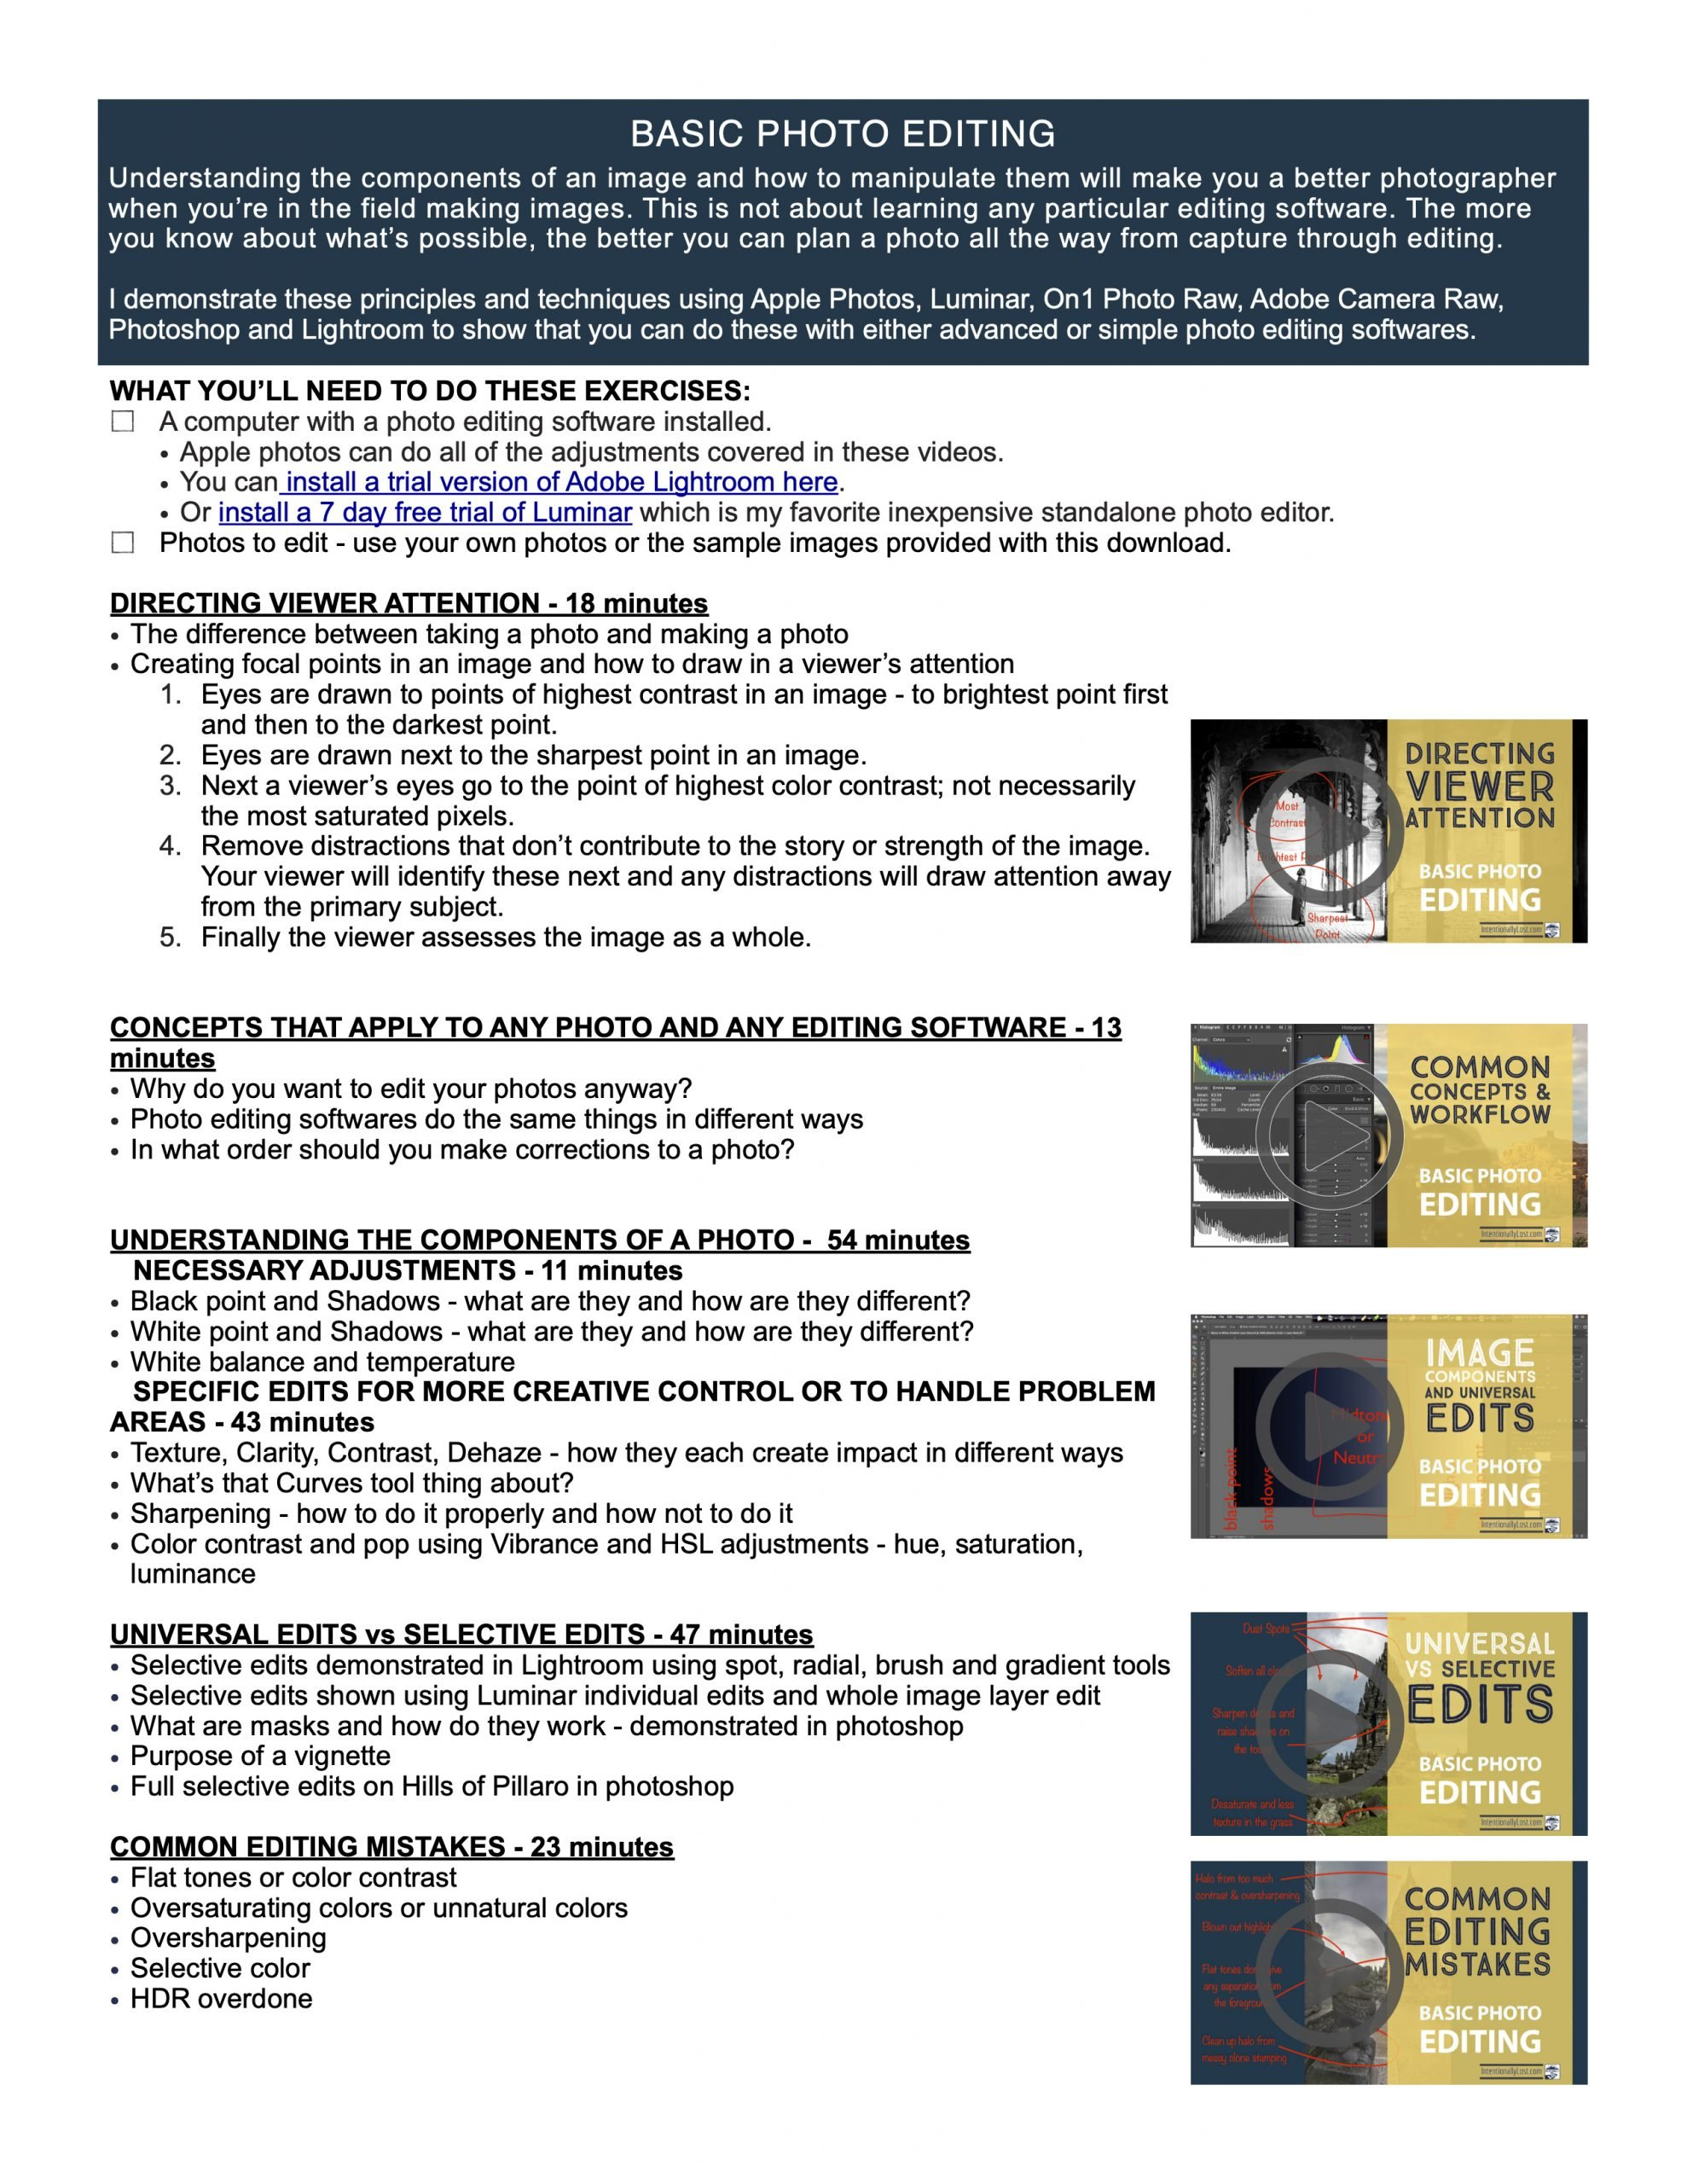 Learn Photography, basic photo editing concepts for any software. Understand components of an image. #intentionallylost